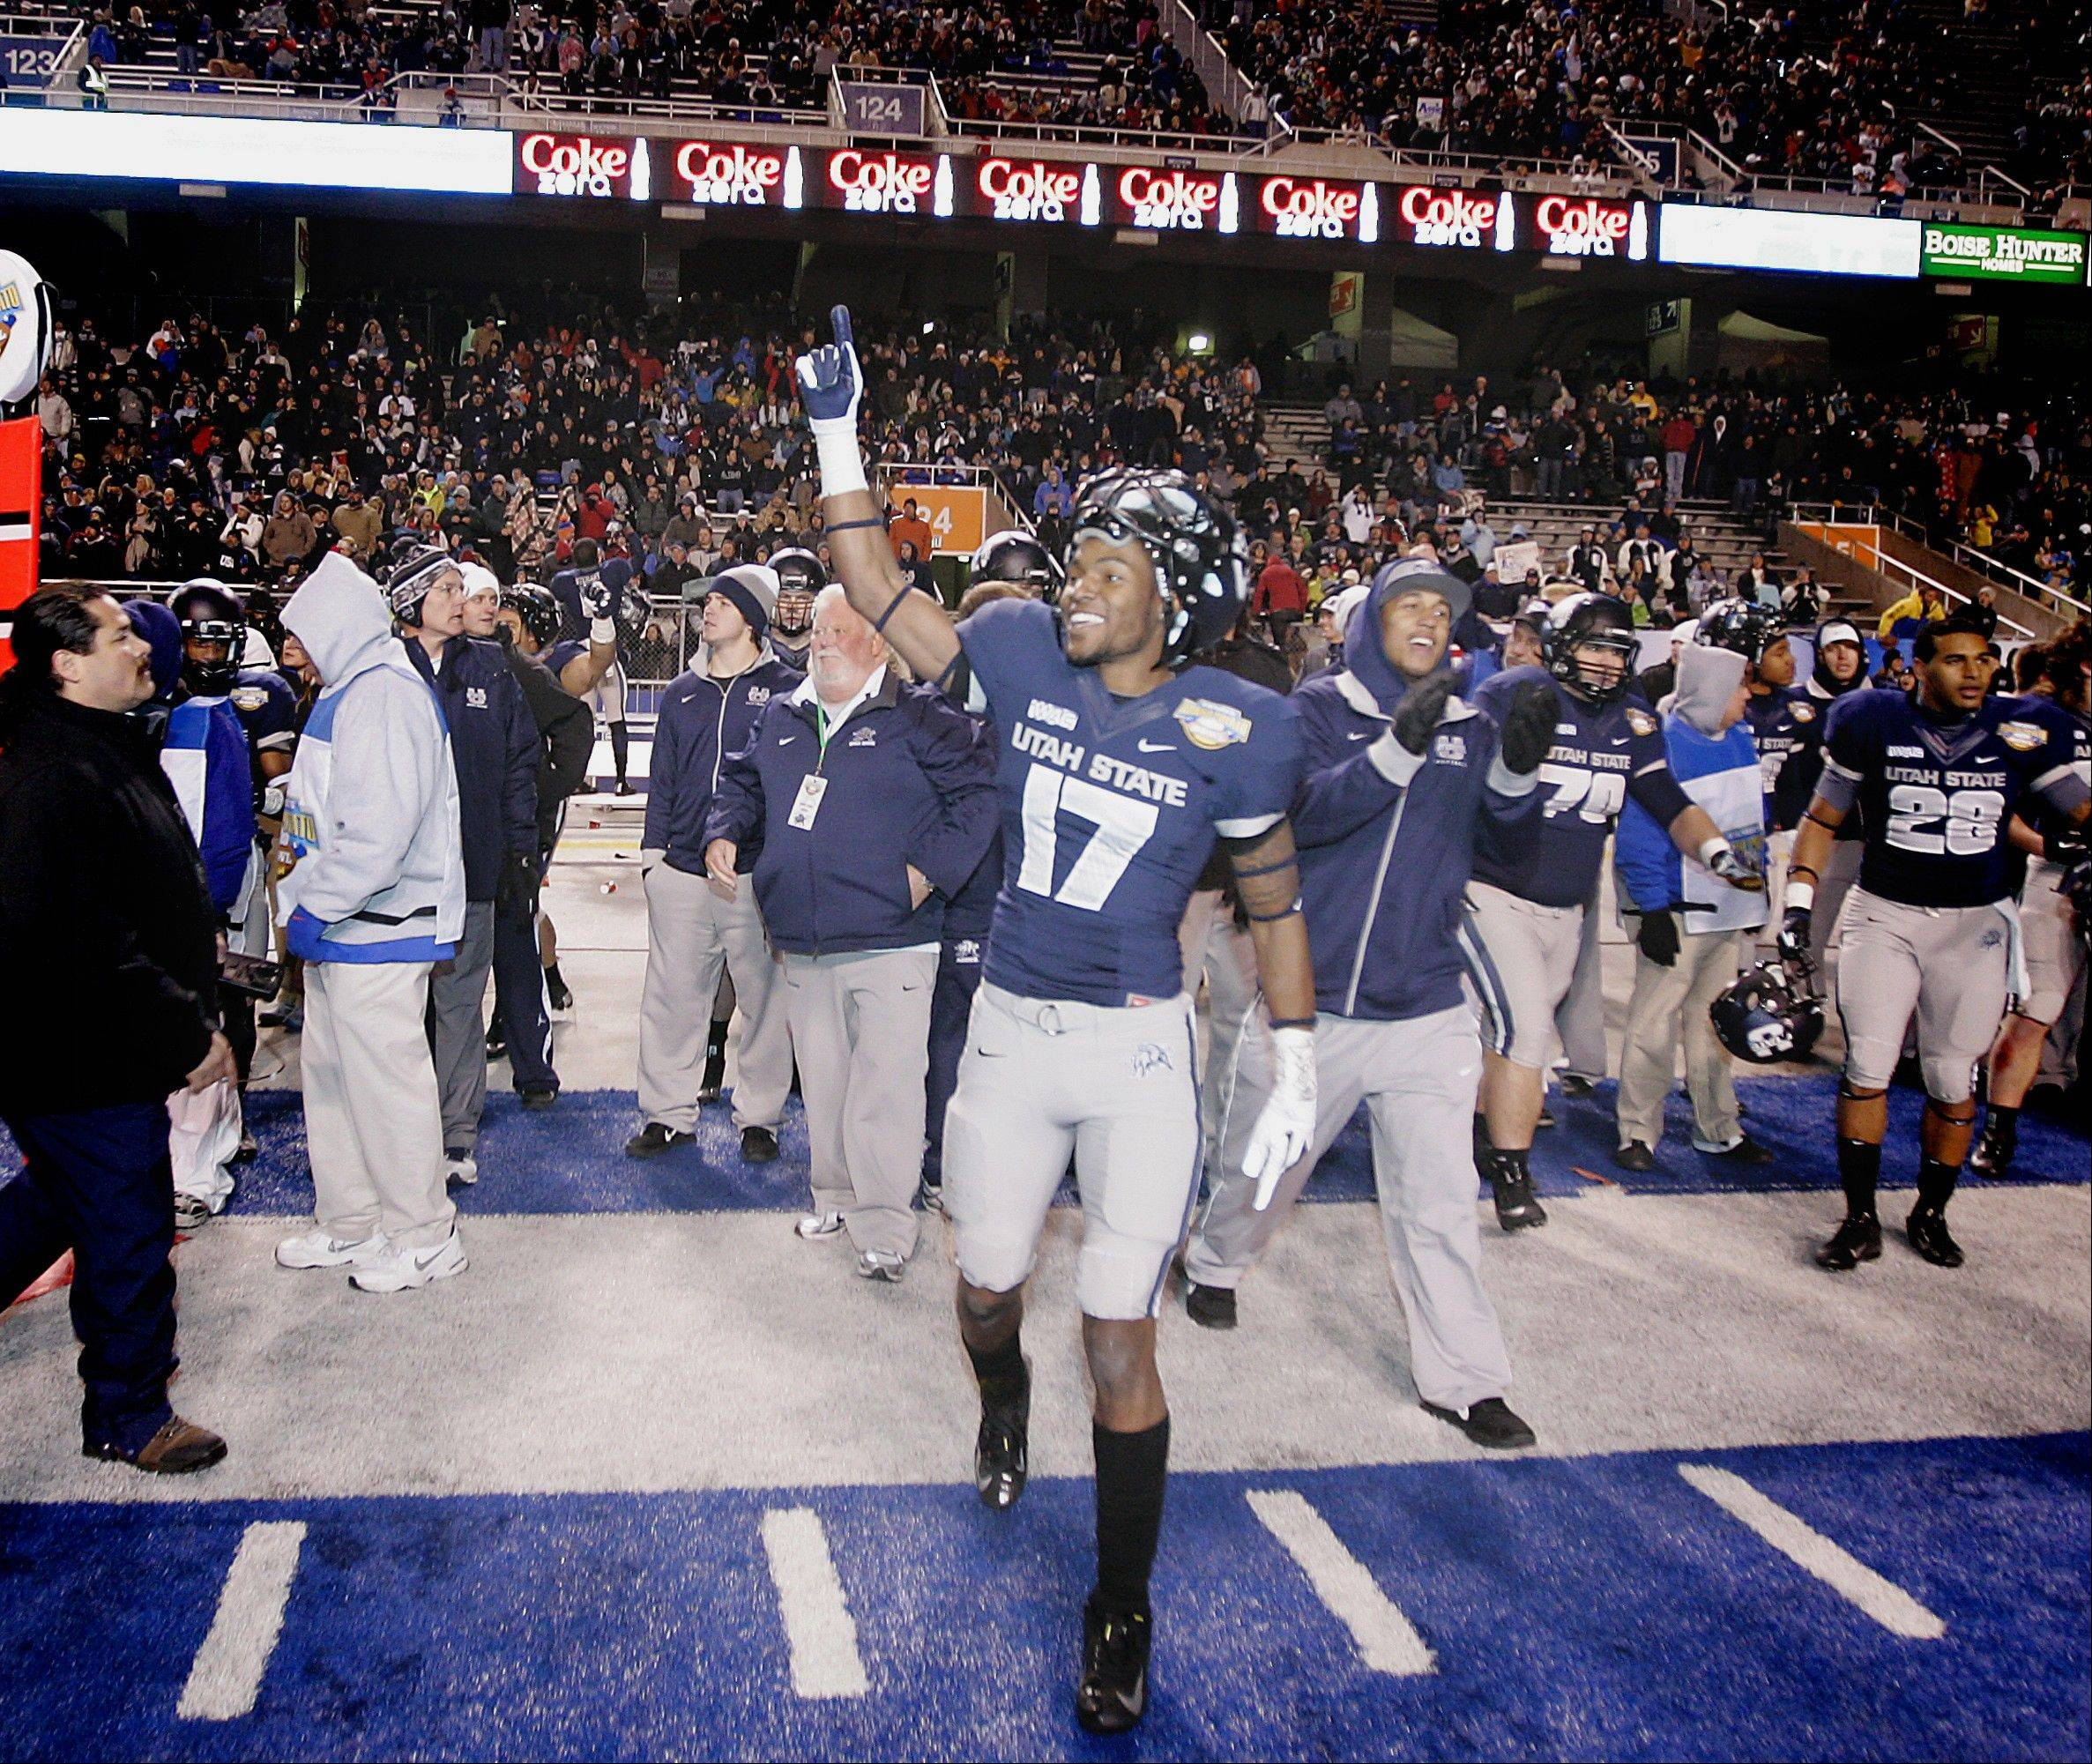 Utah State's Jeff Maning (17) celebrates Saturday after defeating Toledo 41-15 in the Famous Idaho Potato Bowl.